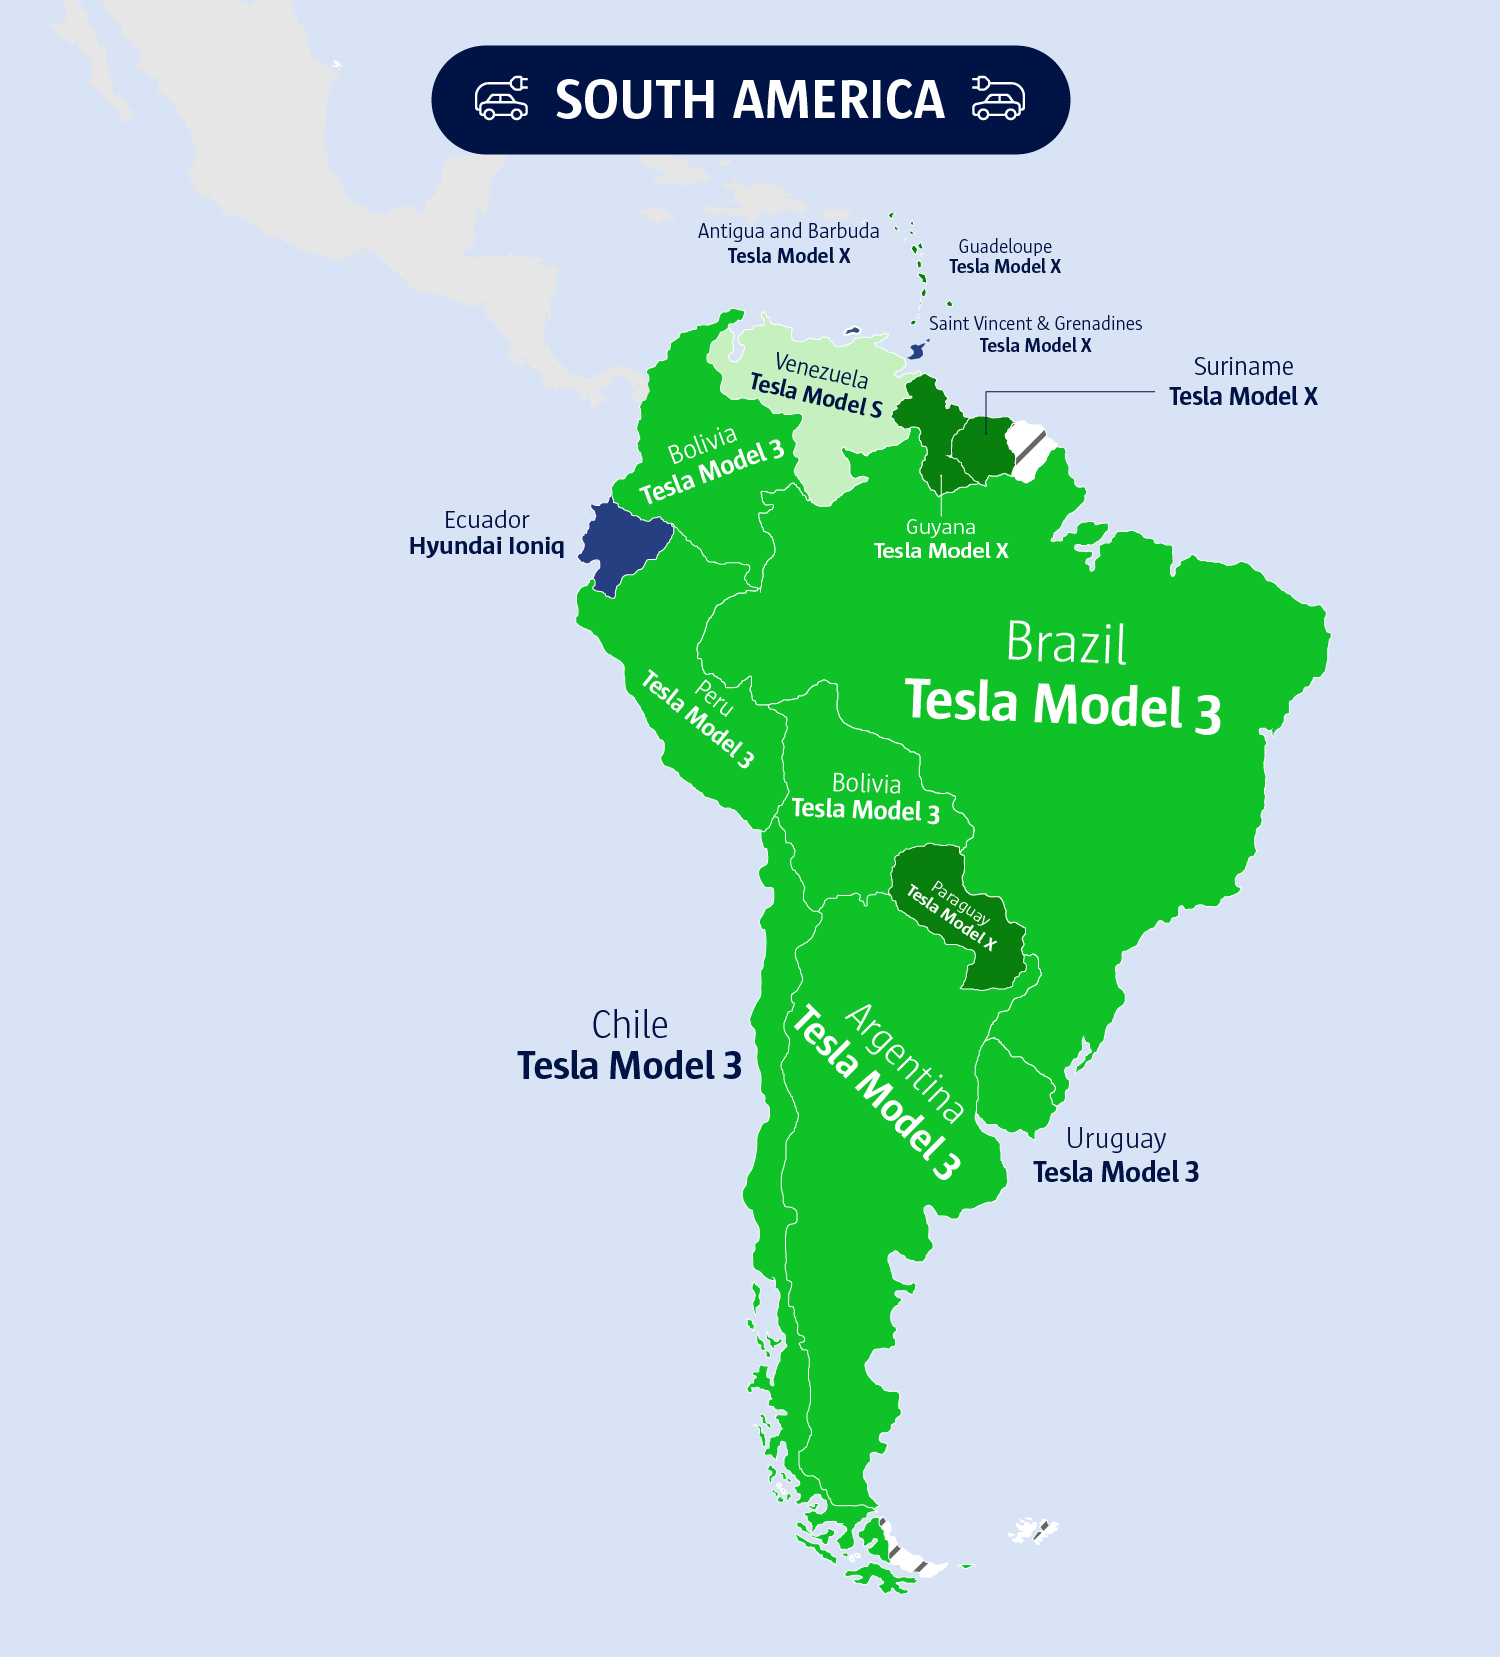 An image of the electric vehicles for South America.